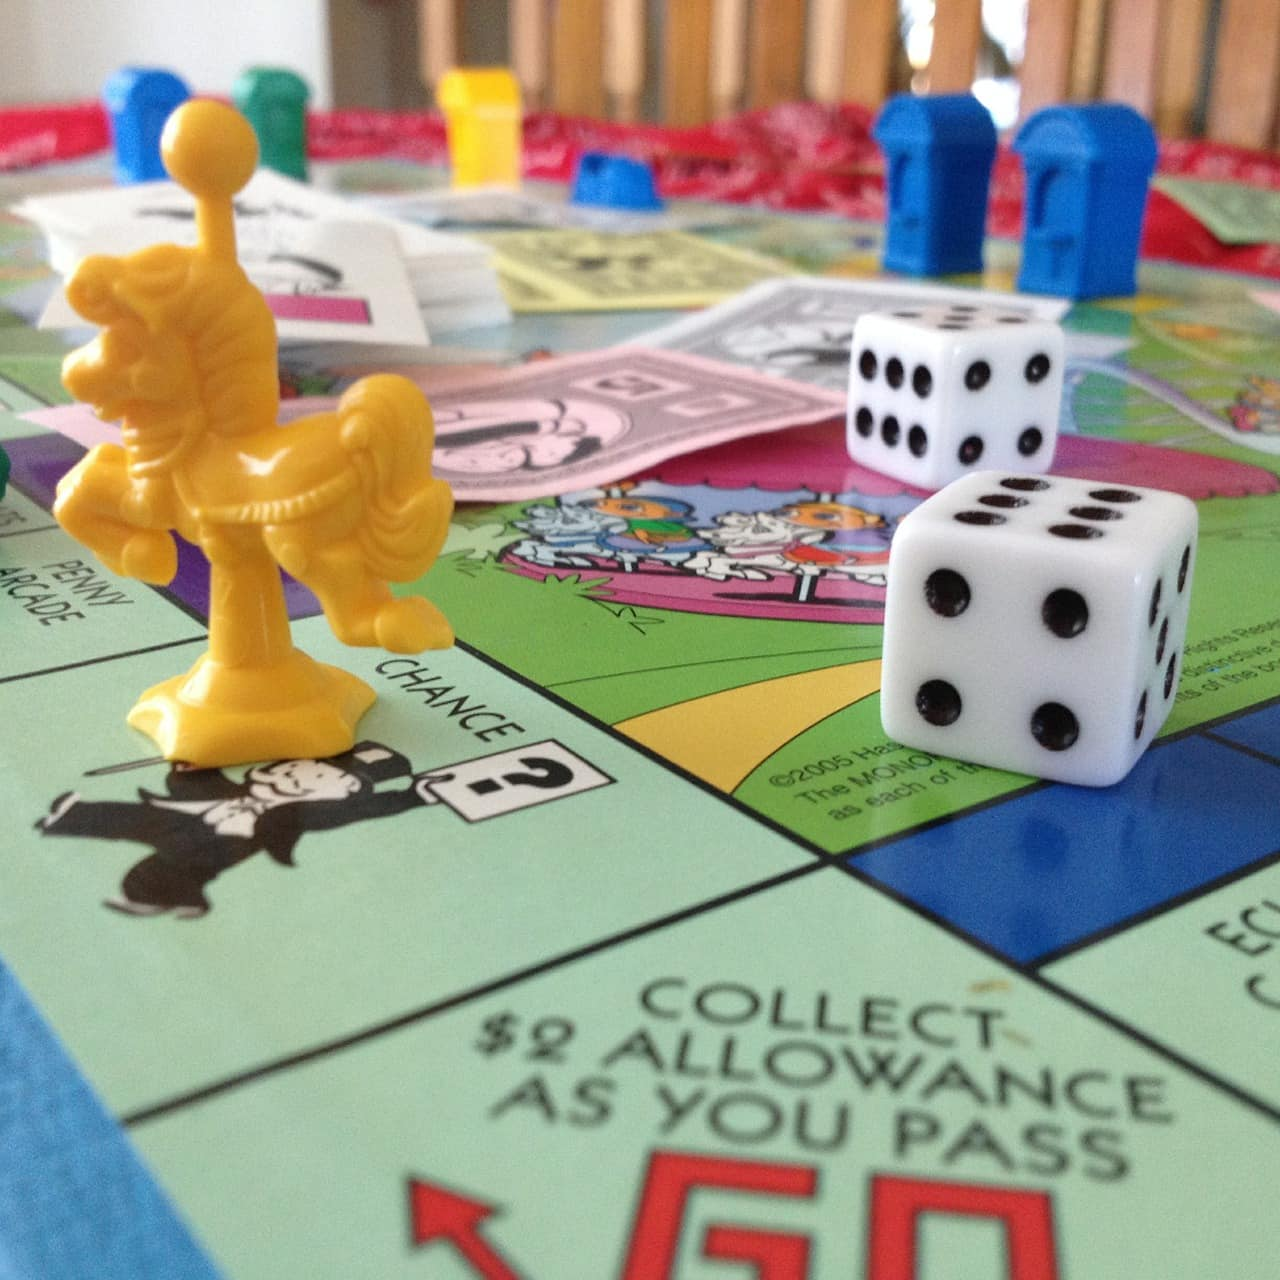 Use games like Monopoly to begin teaching your kids about savings and money